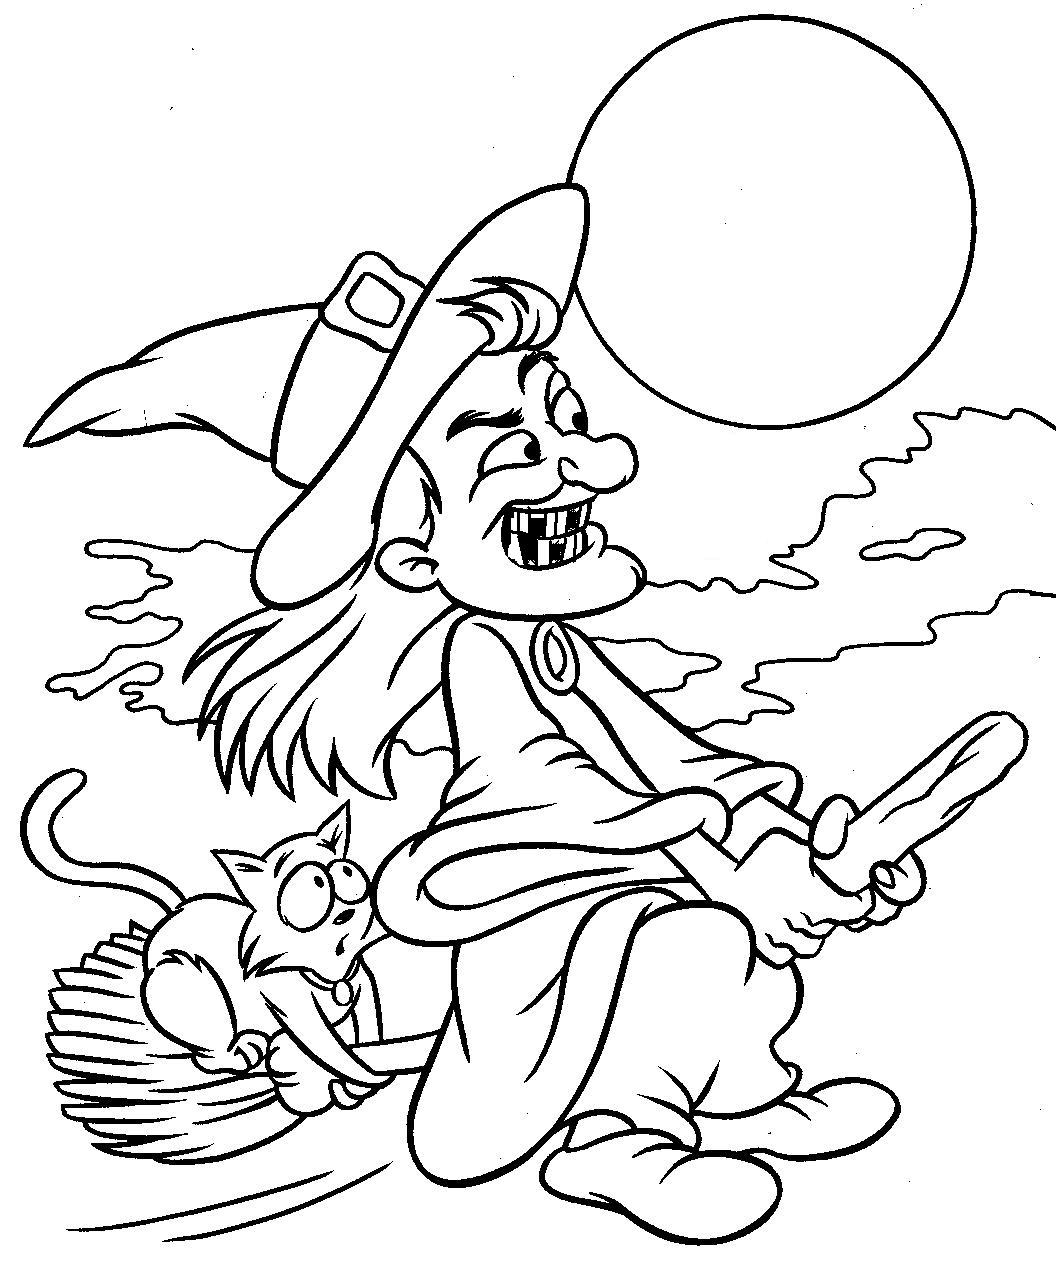 Halloween coloring pages free printable pictures for Printable halloween coloring pages